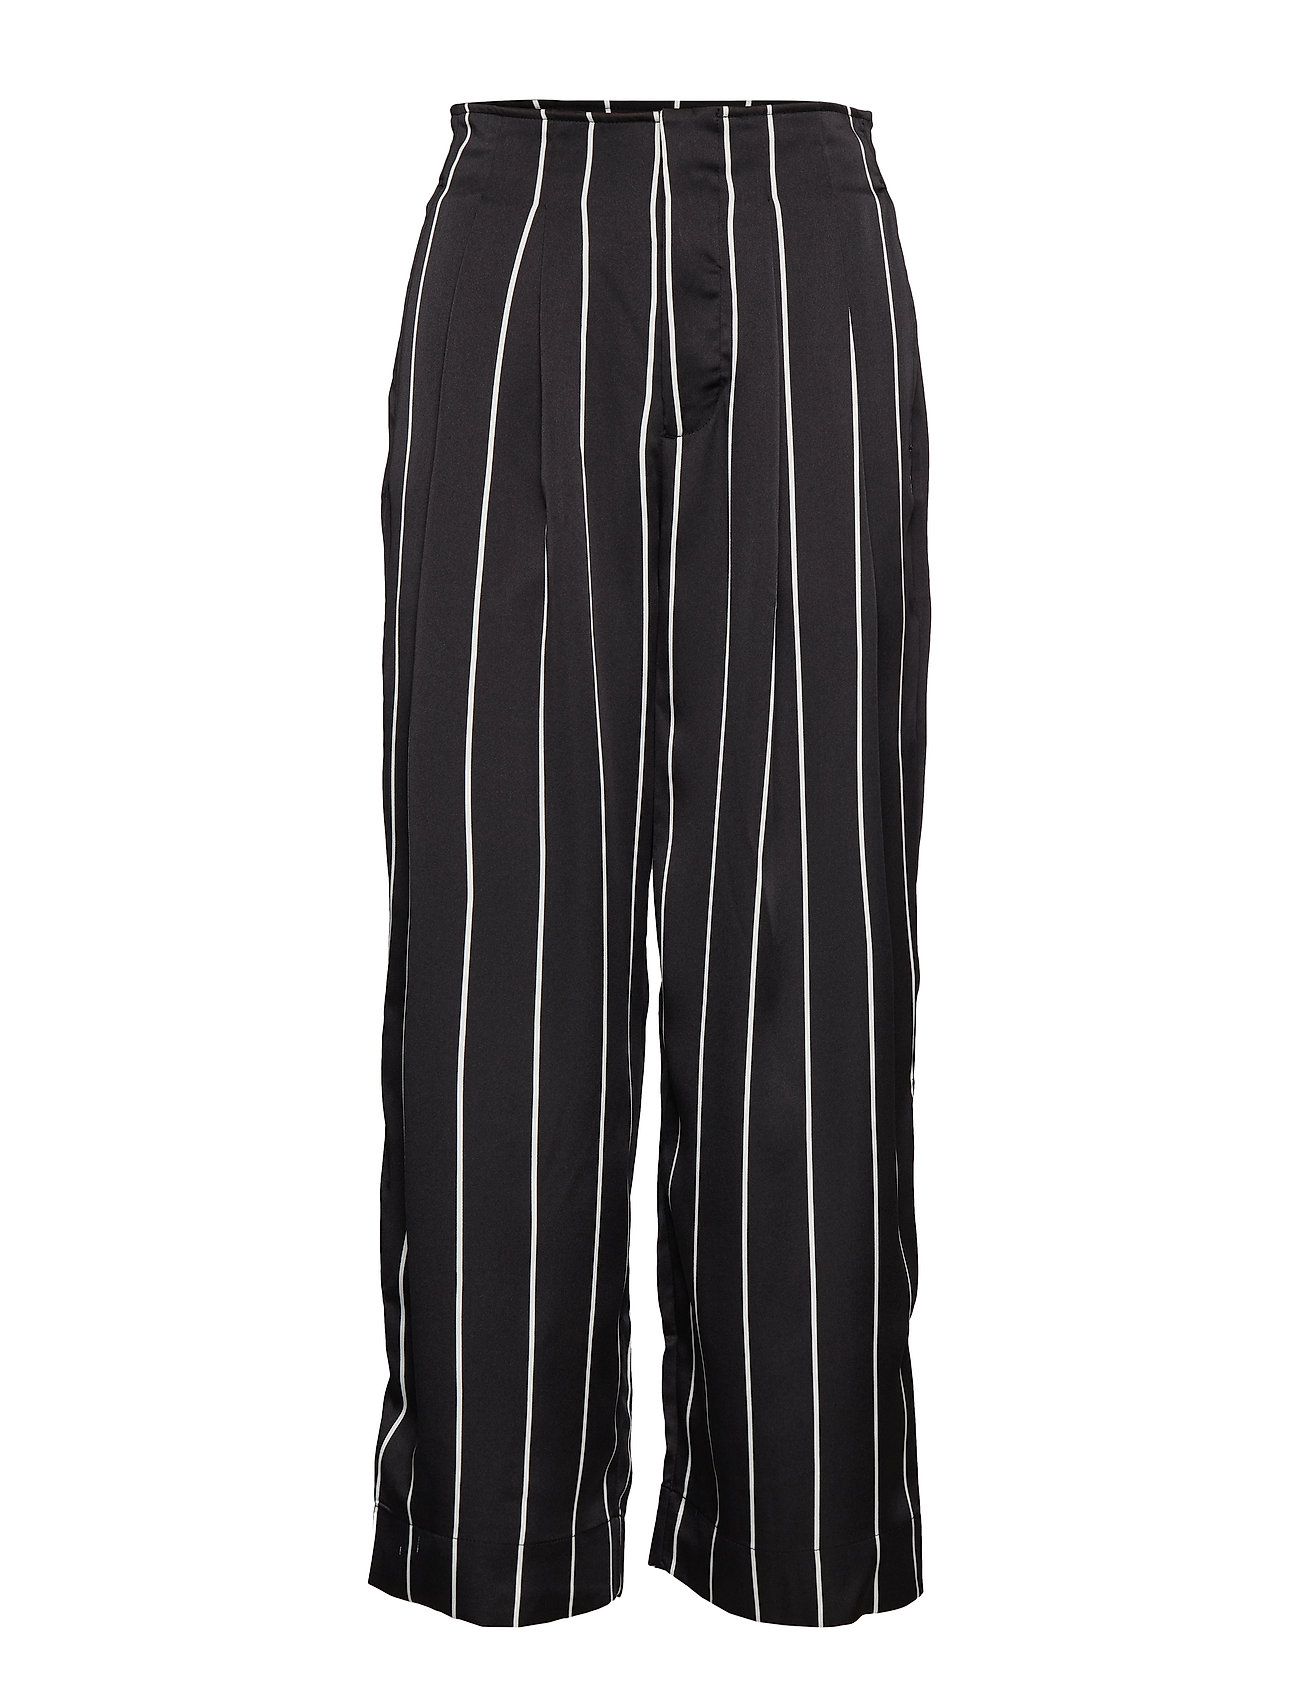 Twist & Tango Brenda Trousers - BLACK STRIPE